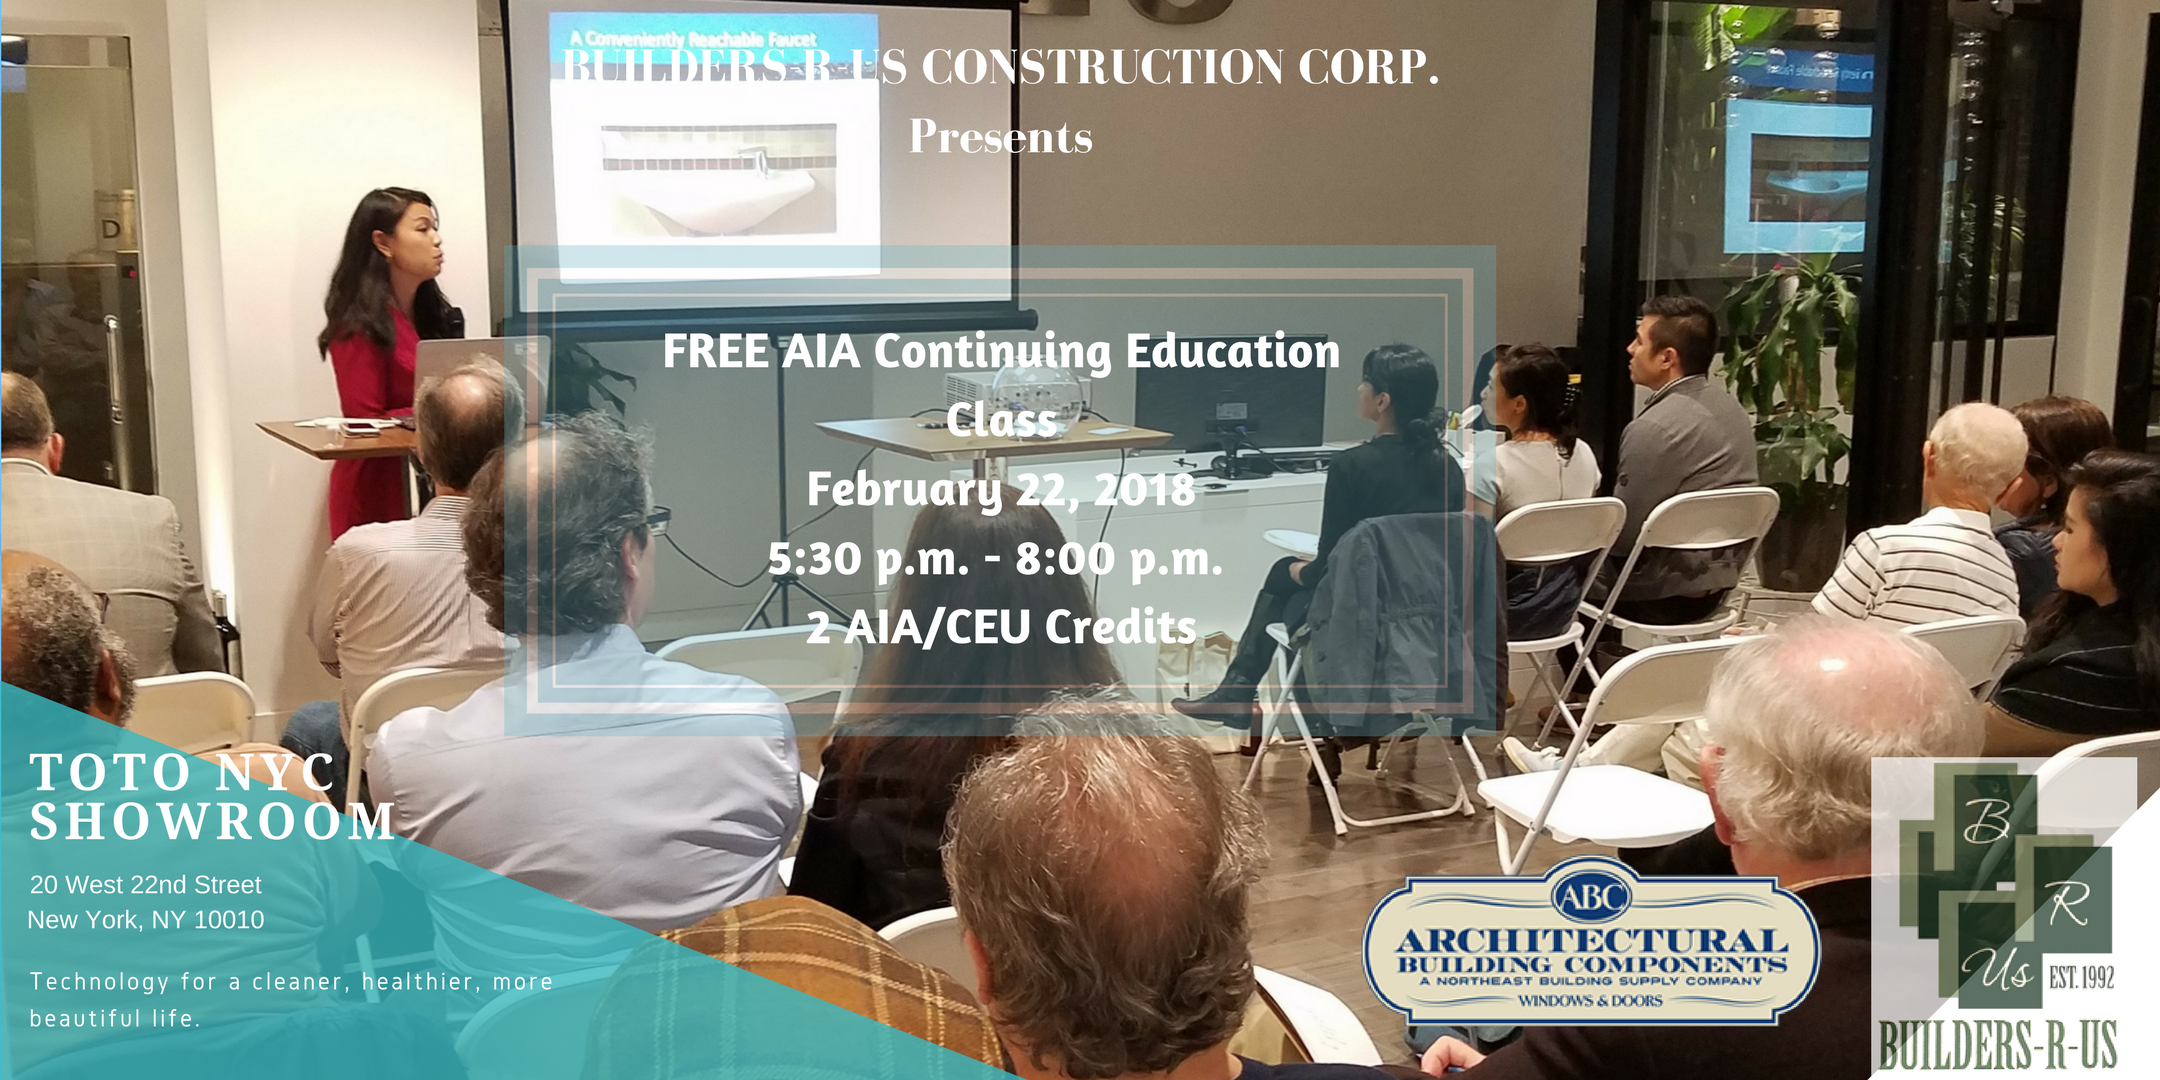 FREE AIA Continuing Education Class- 2 AIA/CEU Only 5 Seats left ...